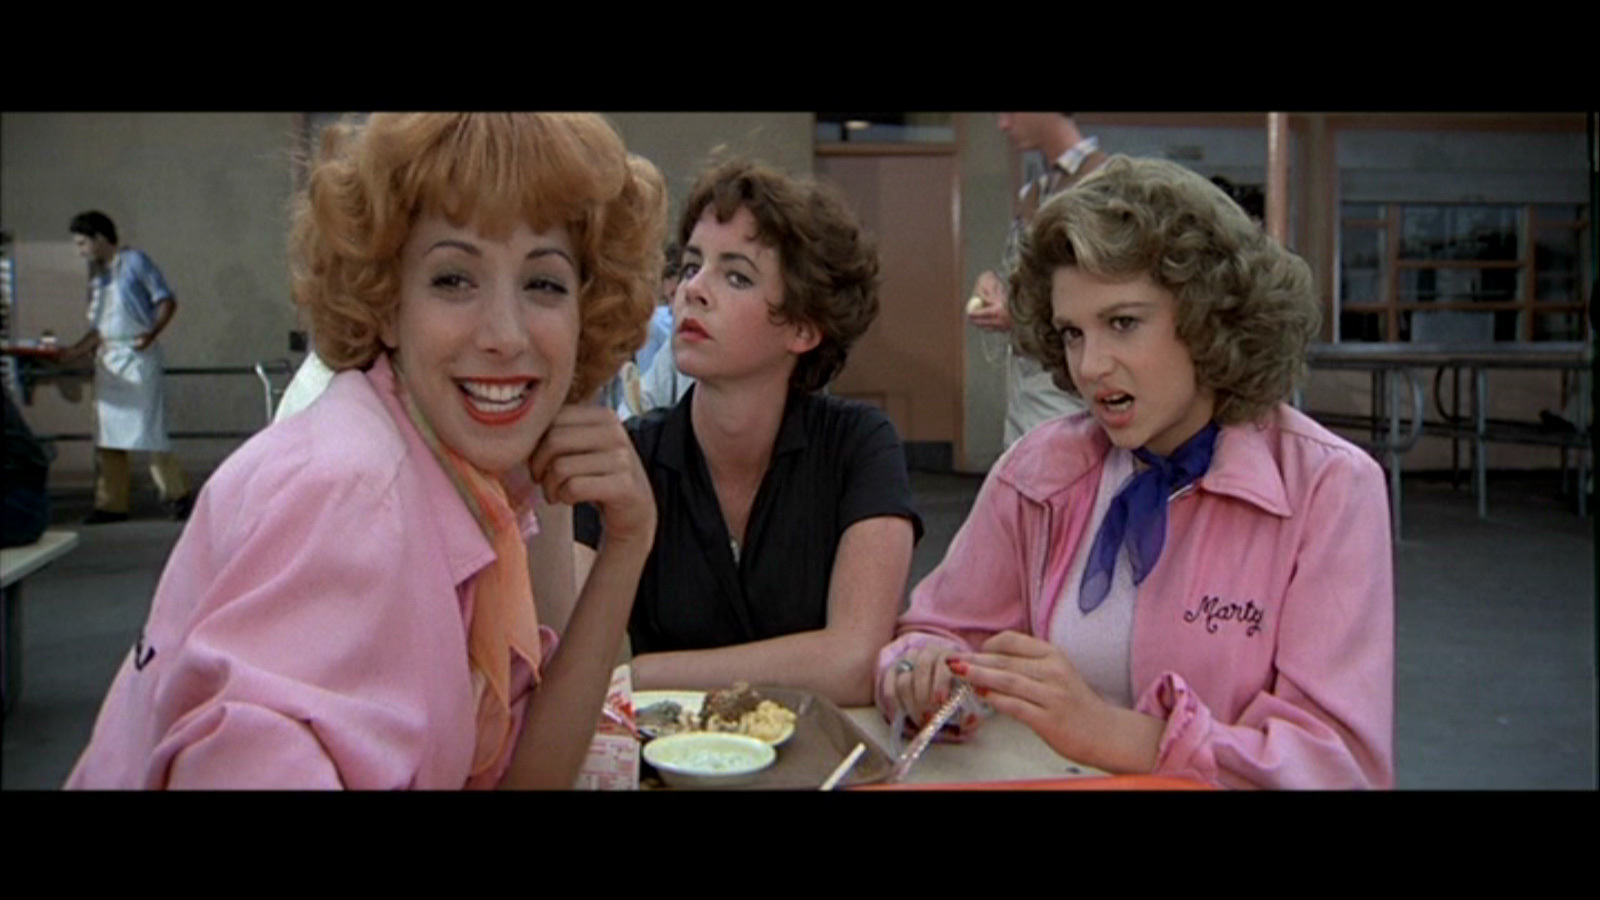 grease movie Watch grease online free grease free movie with english subtitles watch grease putlocker, 123movies and xmovies in hd quality free online, grease full movie with fast hd streaming, download grease movie trailer: grease report please help us to describe the issue so we can fix it.